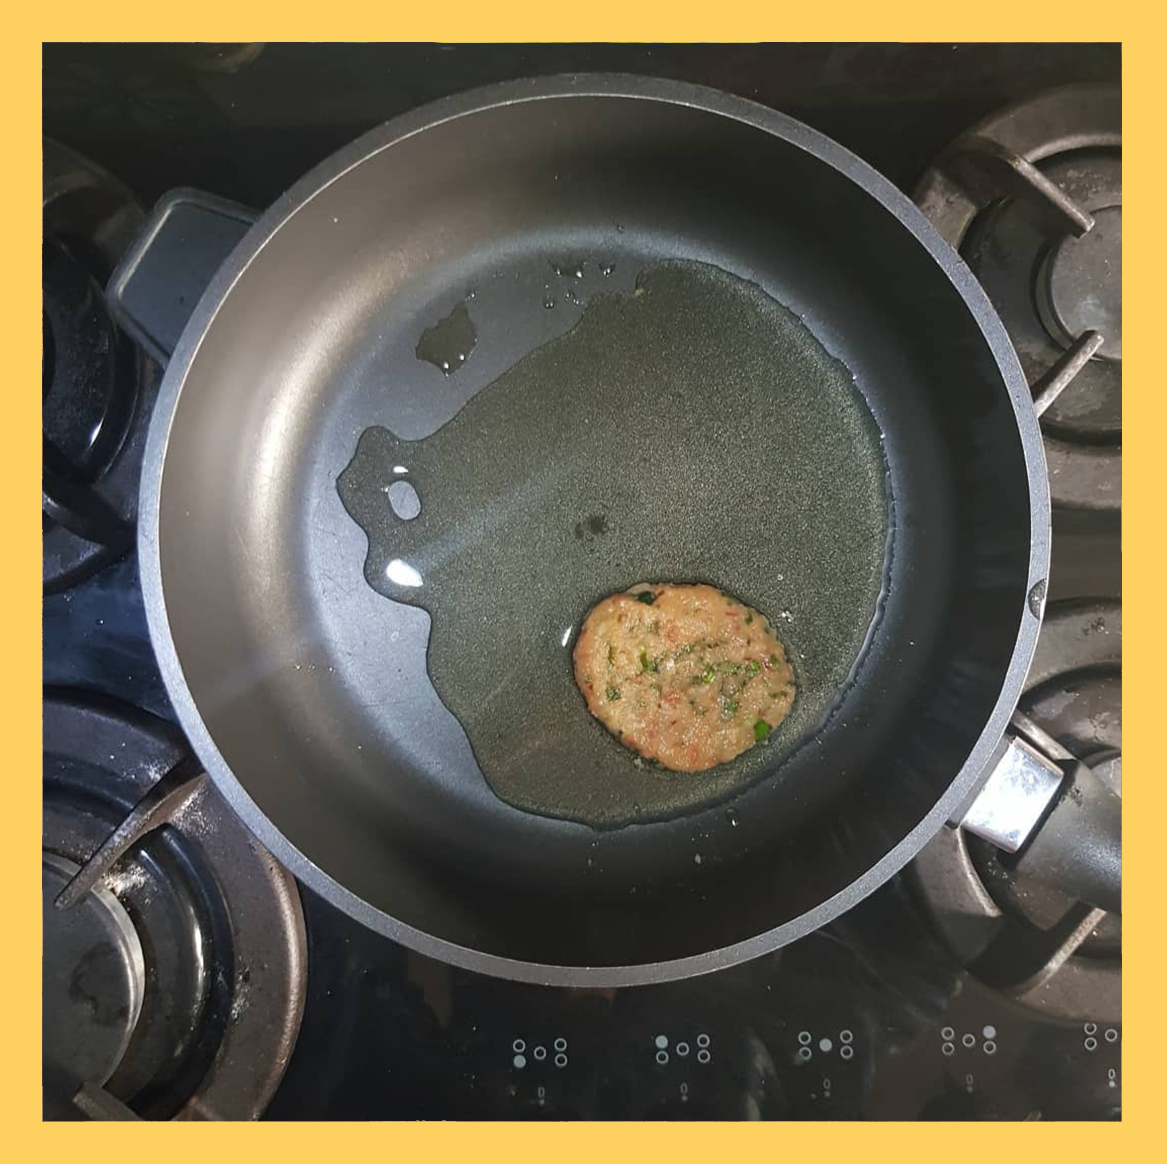 fried the cuylet in oil , کتلت مرغ 3